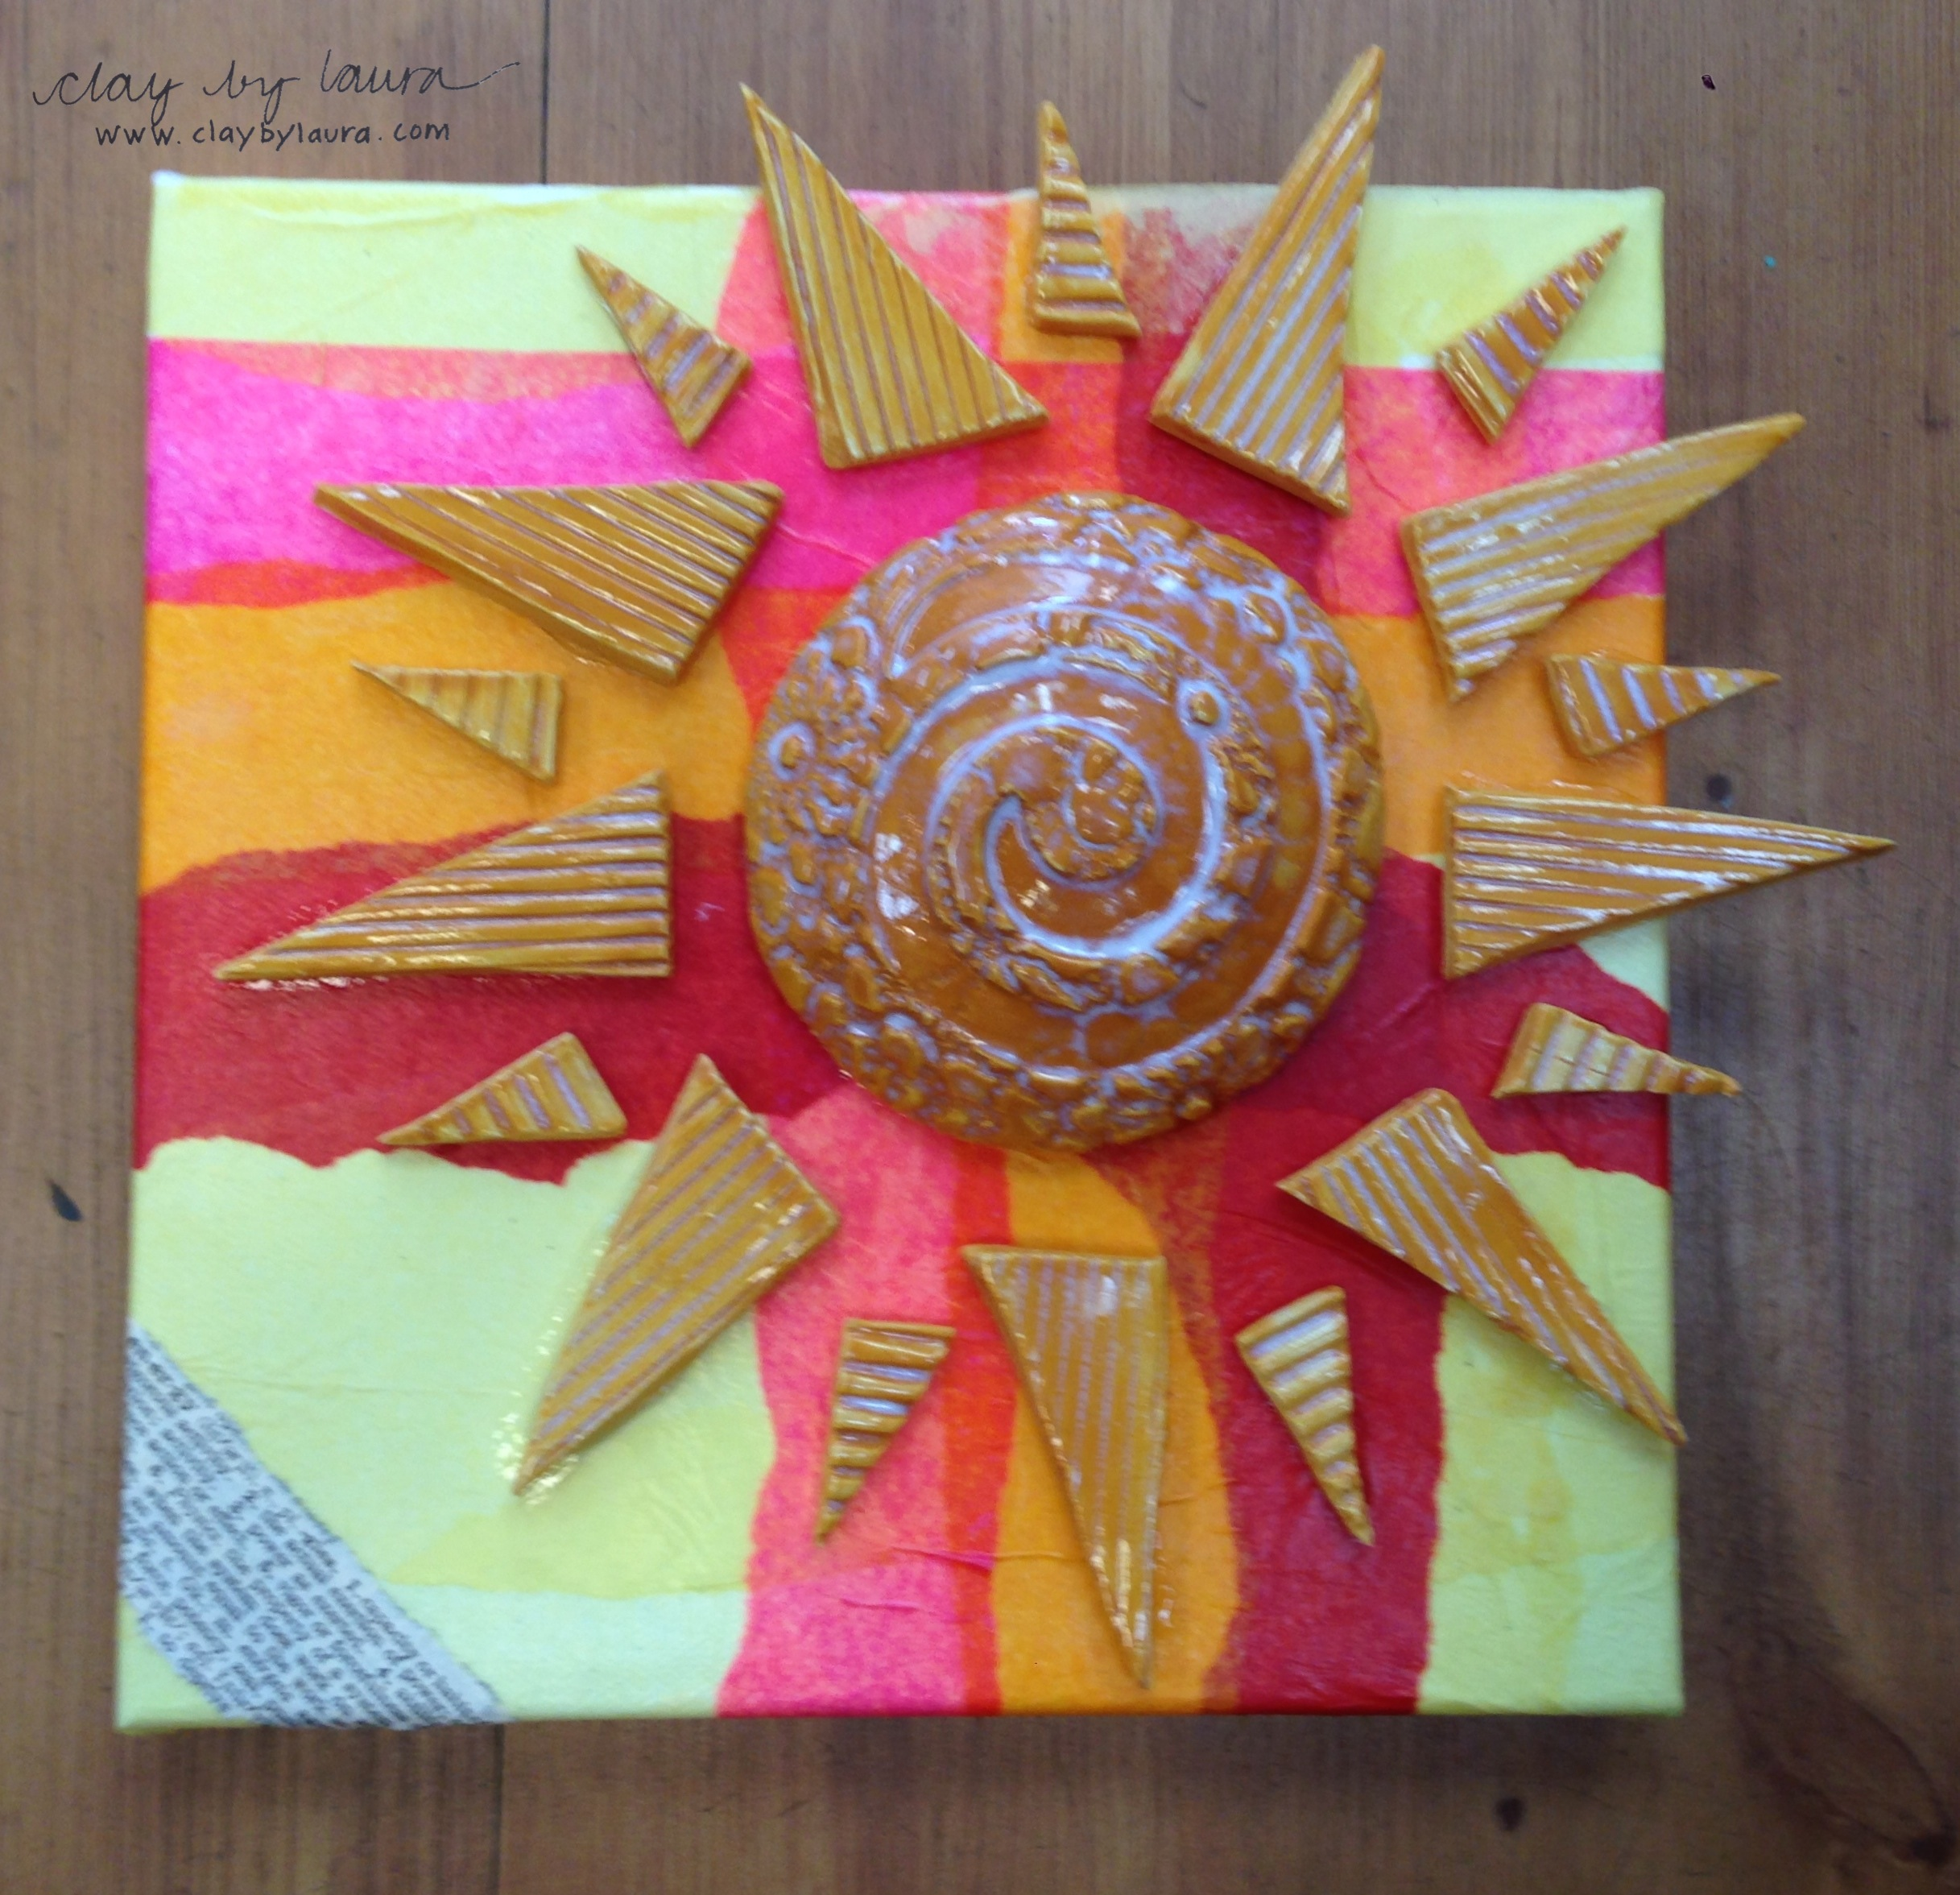 The sun represents endless energy to me. The finished artwork along with all the other artist donations is available at  The Muse  in Frederick, Md.